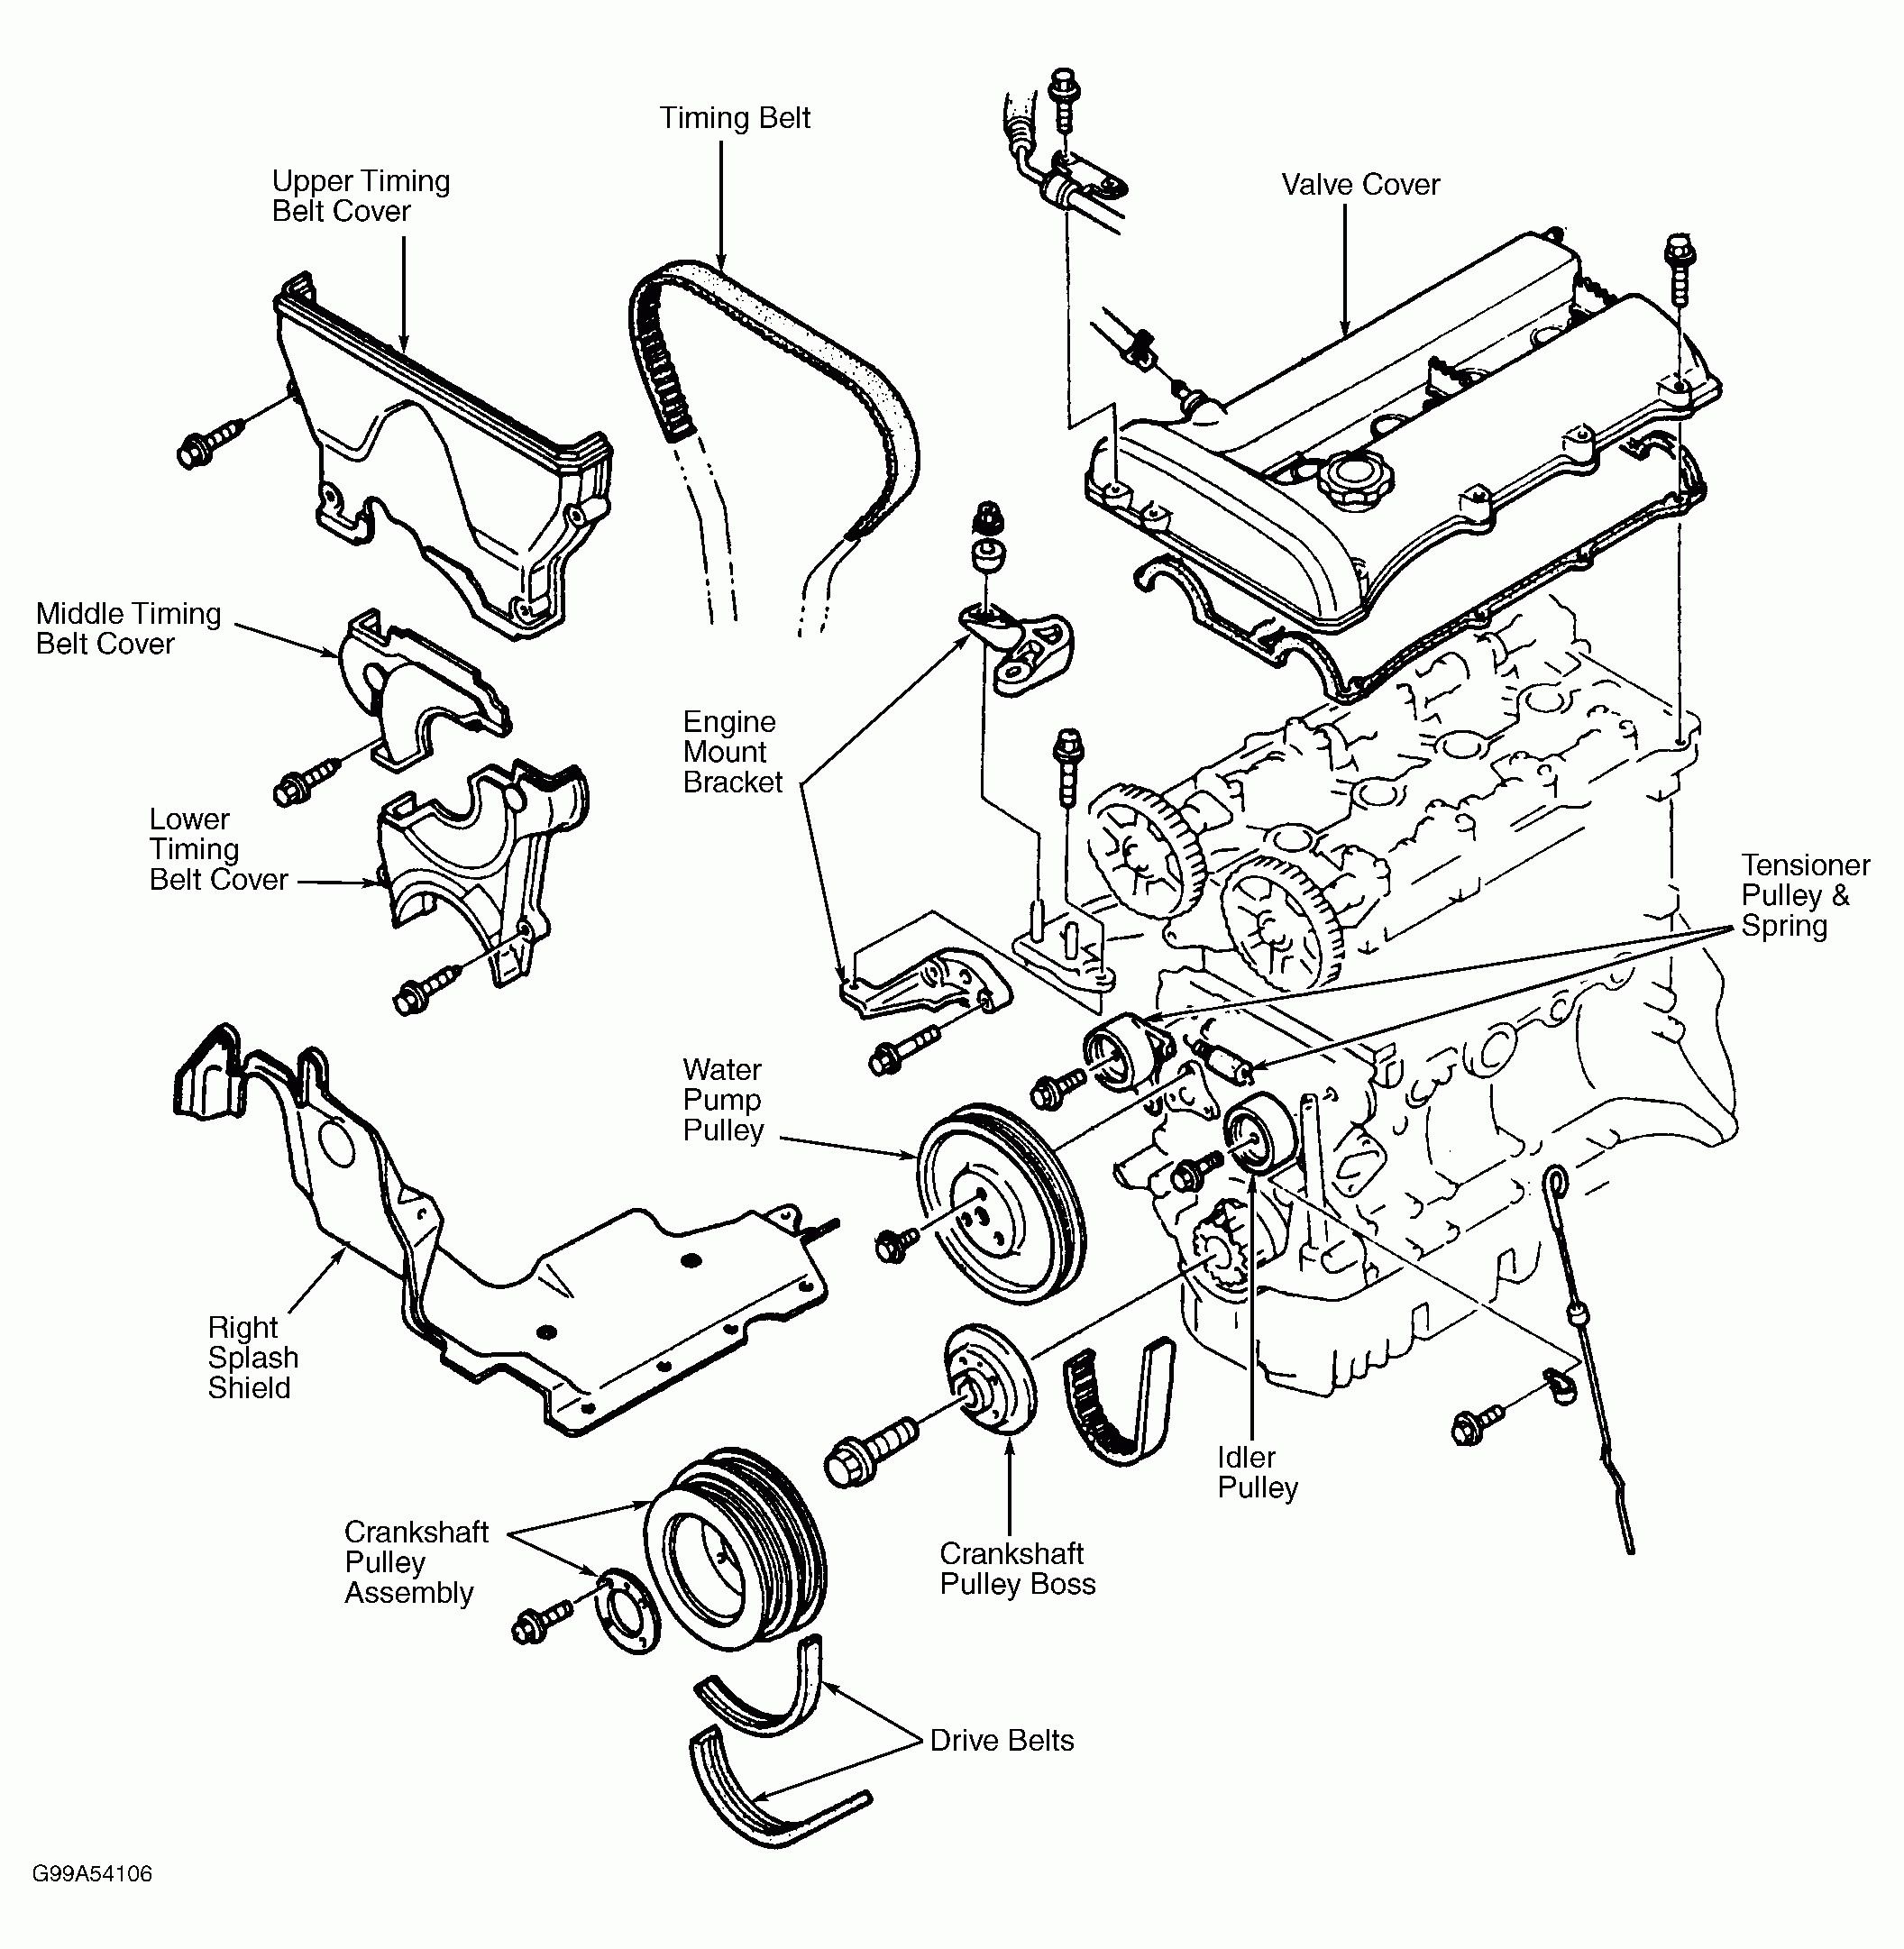 Mazda 323 Engine Diagram Cool Review About Protege5 with Amazing S – Movingintoluminosity Of Mazda 323 Engine Diagram